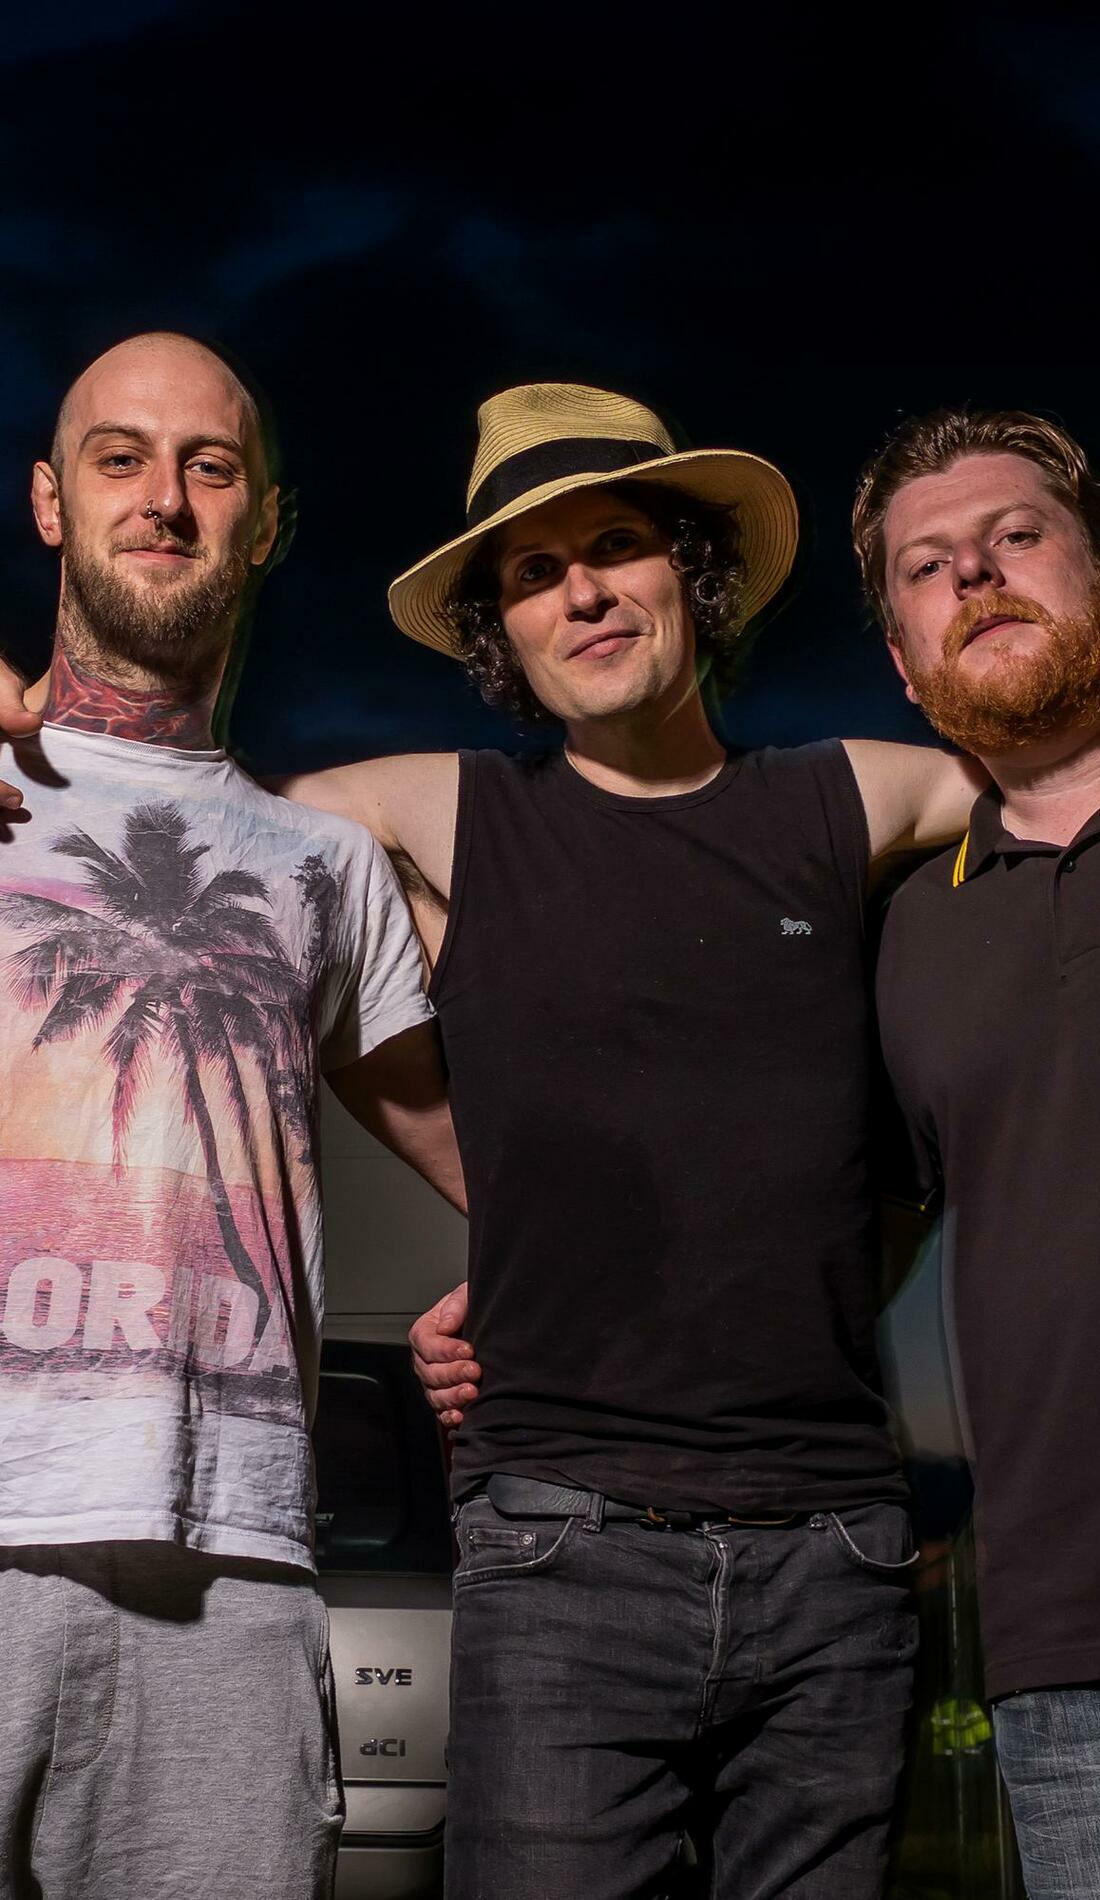 A The Fratellis live event